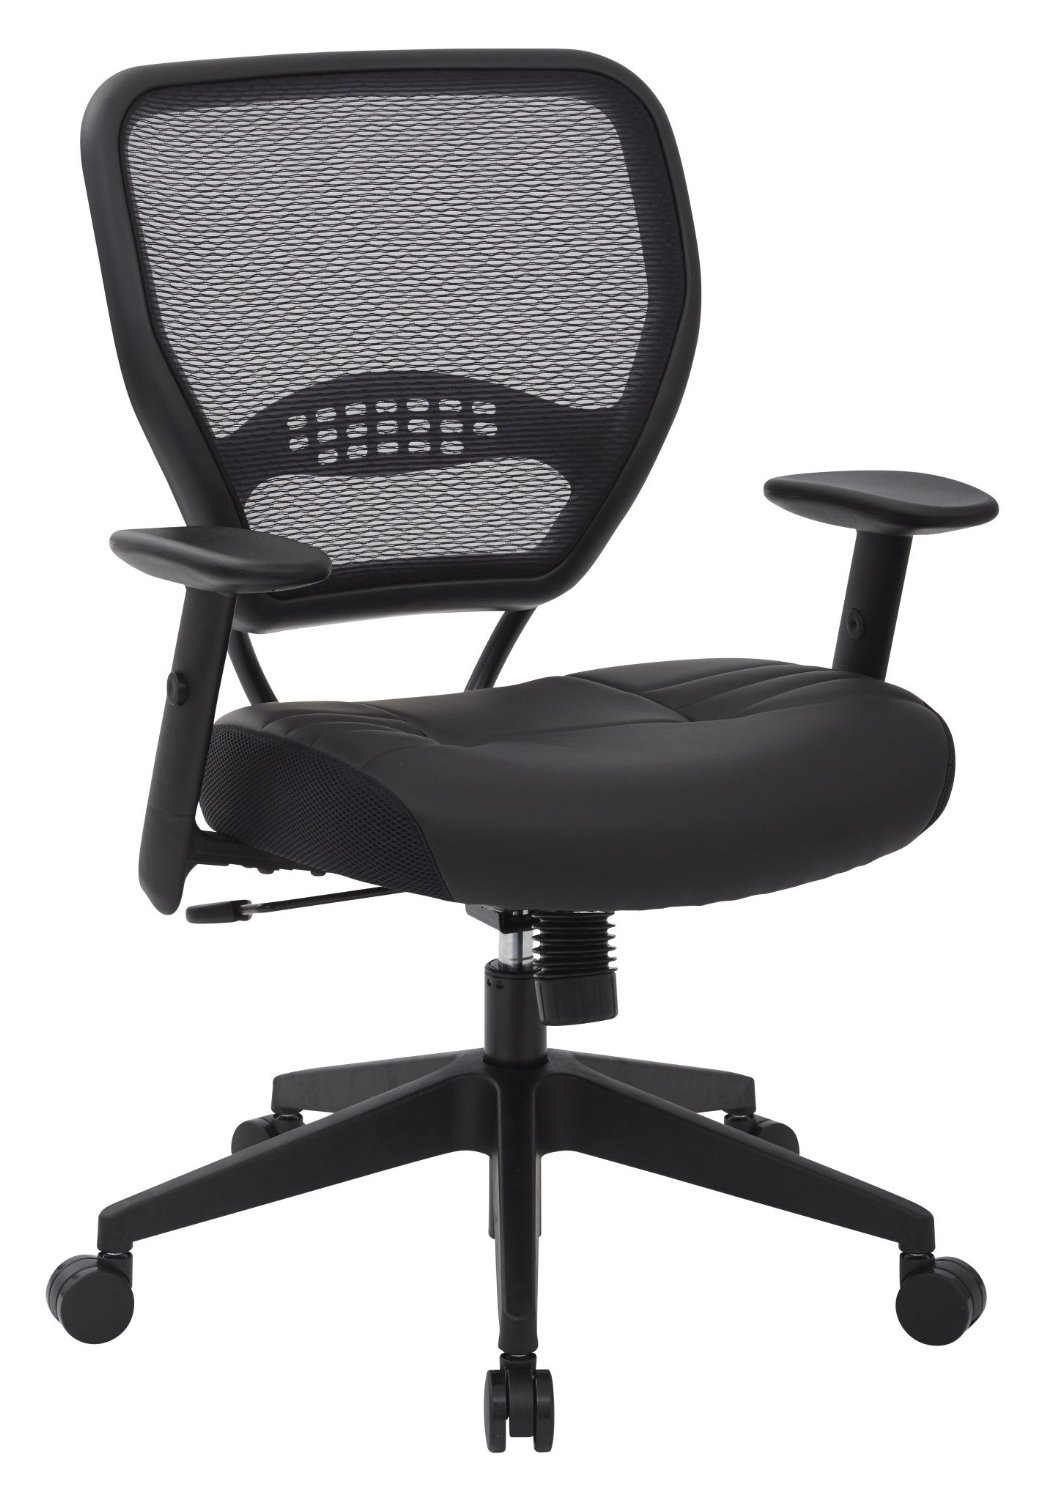 Best ideas about Best Home Office Chair . Save or Pin Best Selling Home fice Furniture Now.